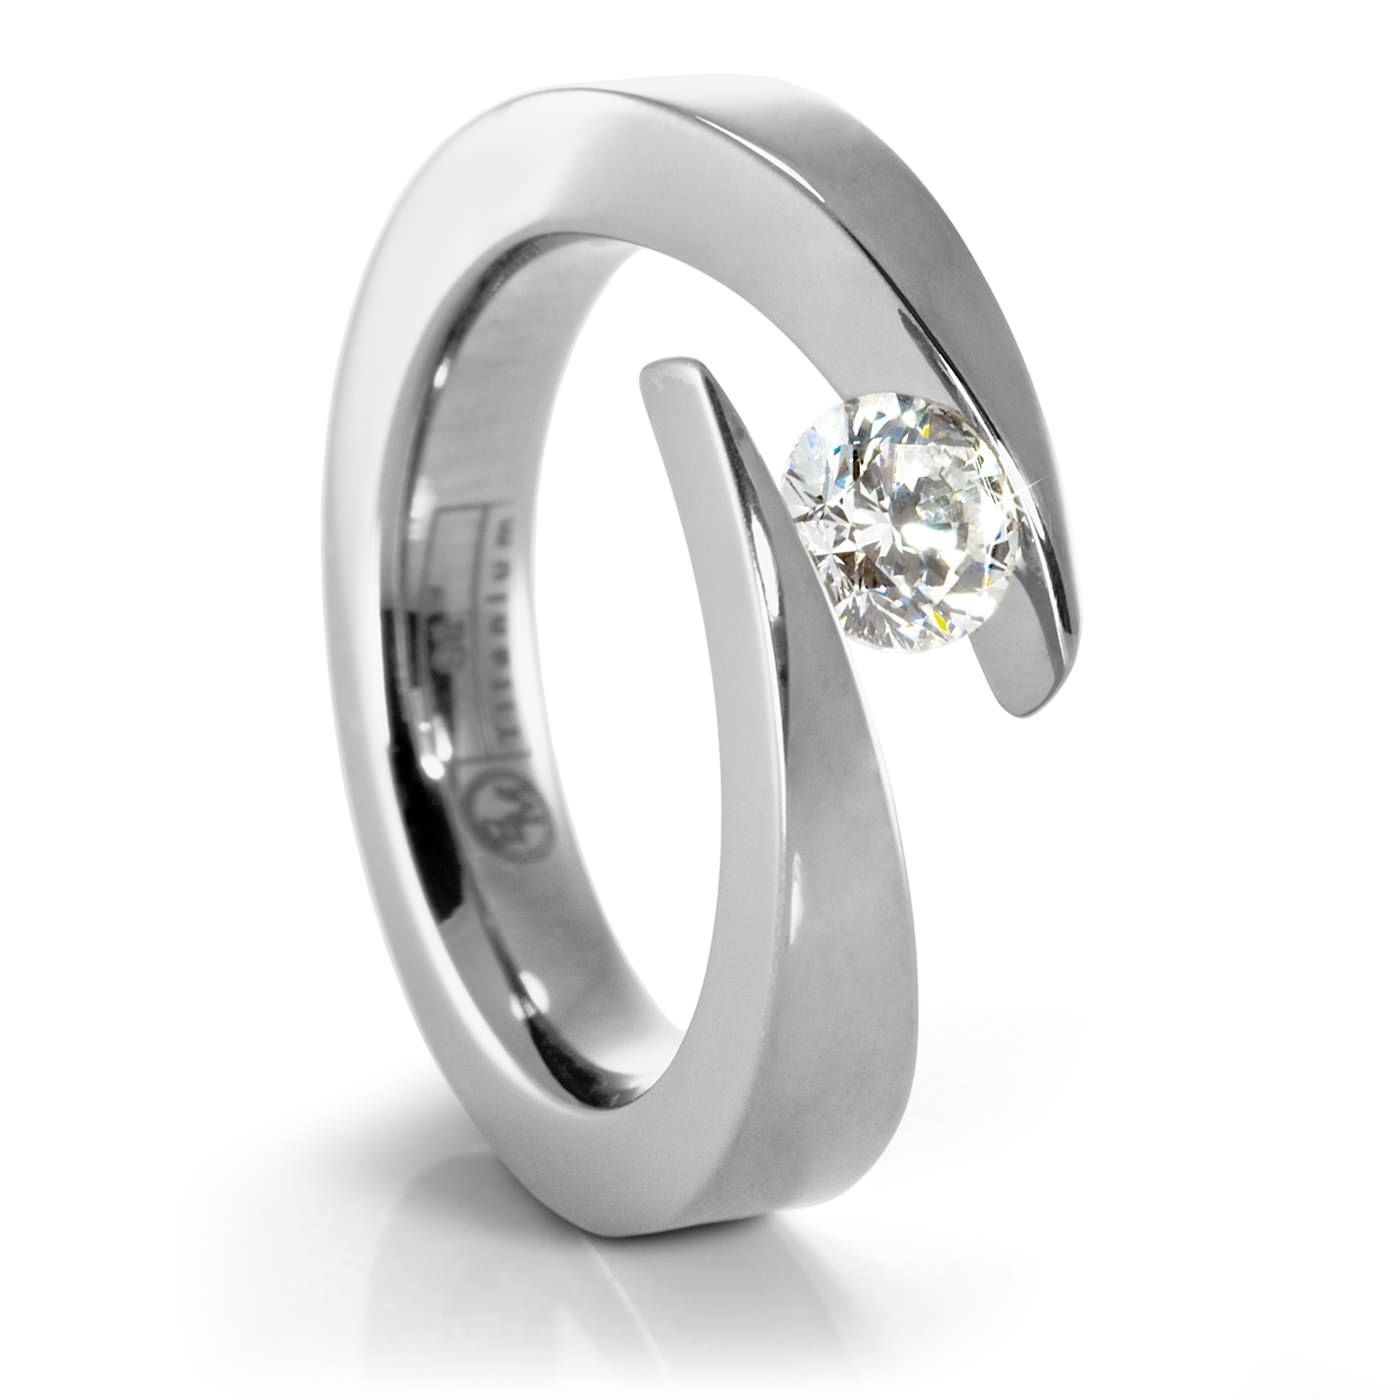 Jolie Ladies' Titanium & Diamond Engagement Ring Throughout Tension Set Engagement Rings With Wedding Bands (View 2 of 15)